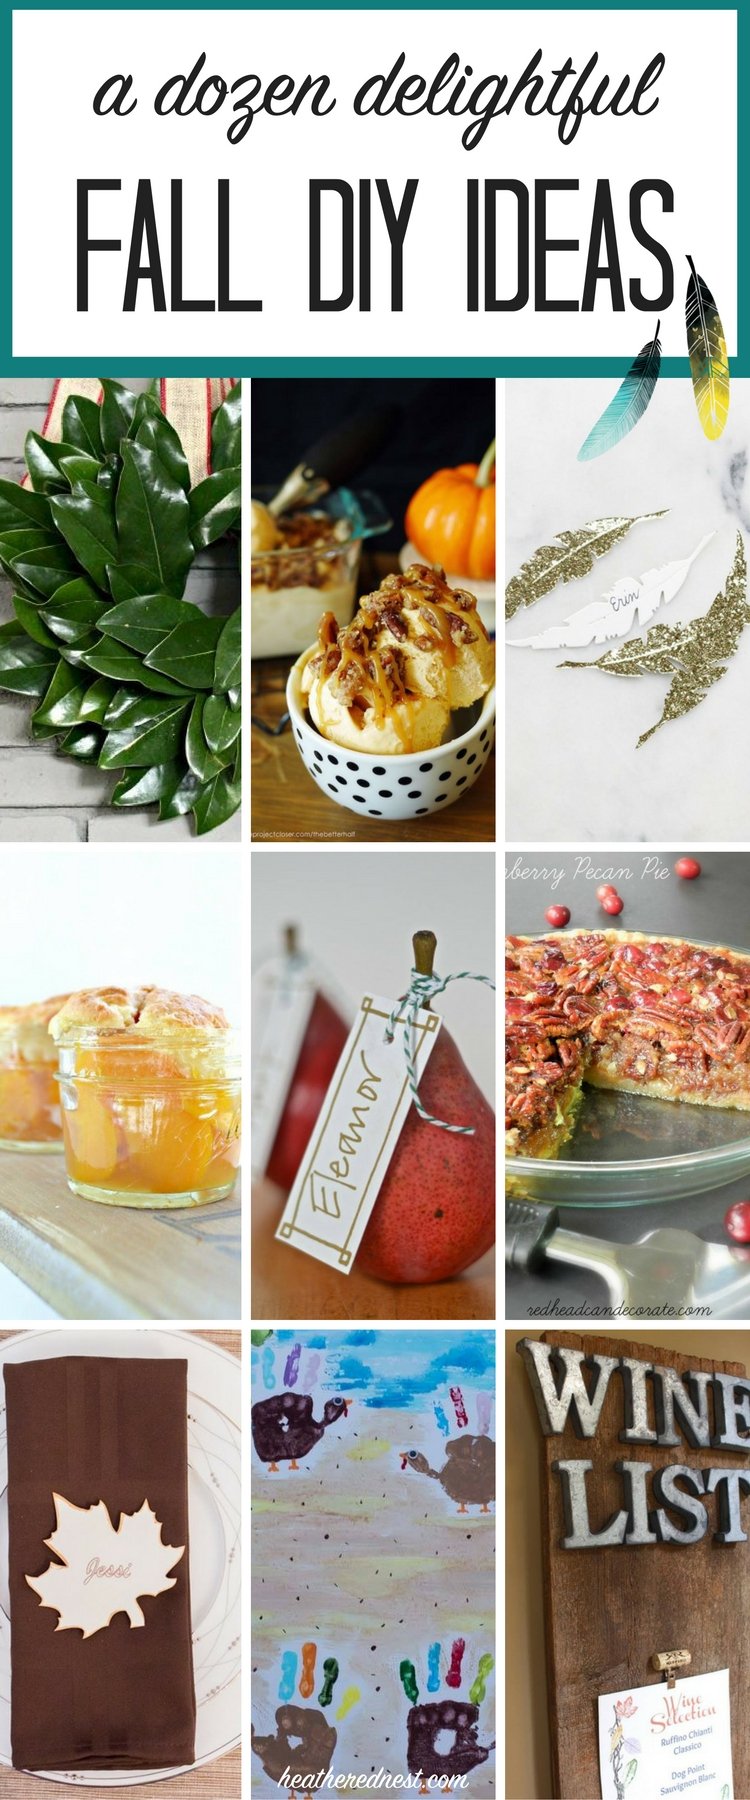 12 terrific DIY ideas for fall! Recipes, wreaths, pumpkin, place cards and printables, oh my!!